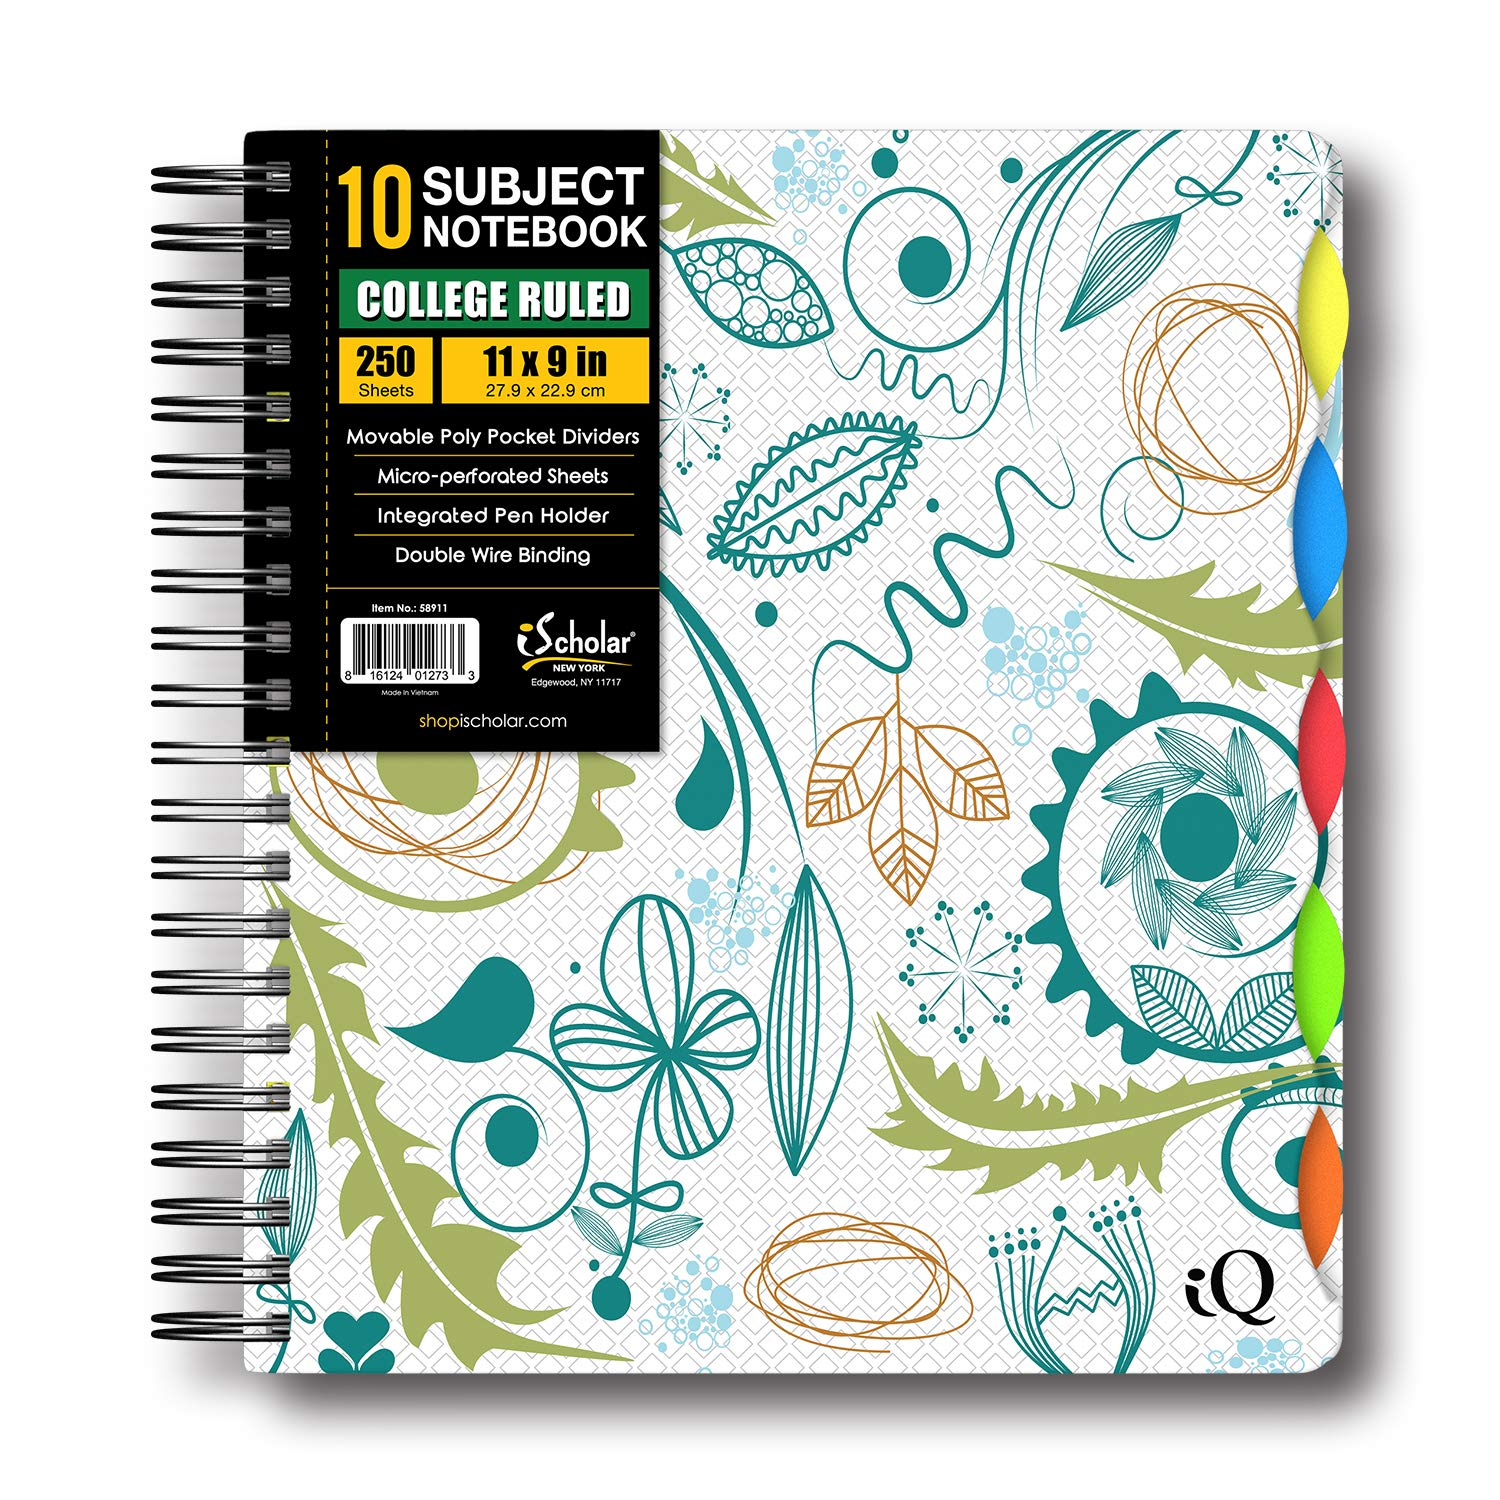 iScholar IQ Poly Cover 10 Subject Notebook, Double Wired, 11 x 8.5 Inches, 250 Sheets, Assorted Bright Cover Designs, Design Will Vary (58911) by iScholar